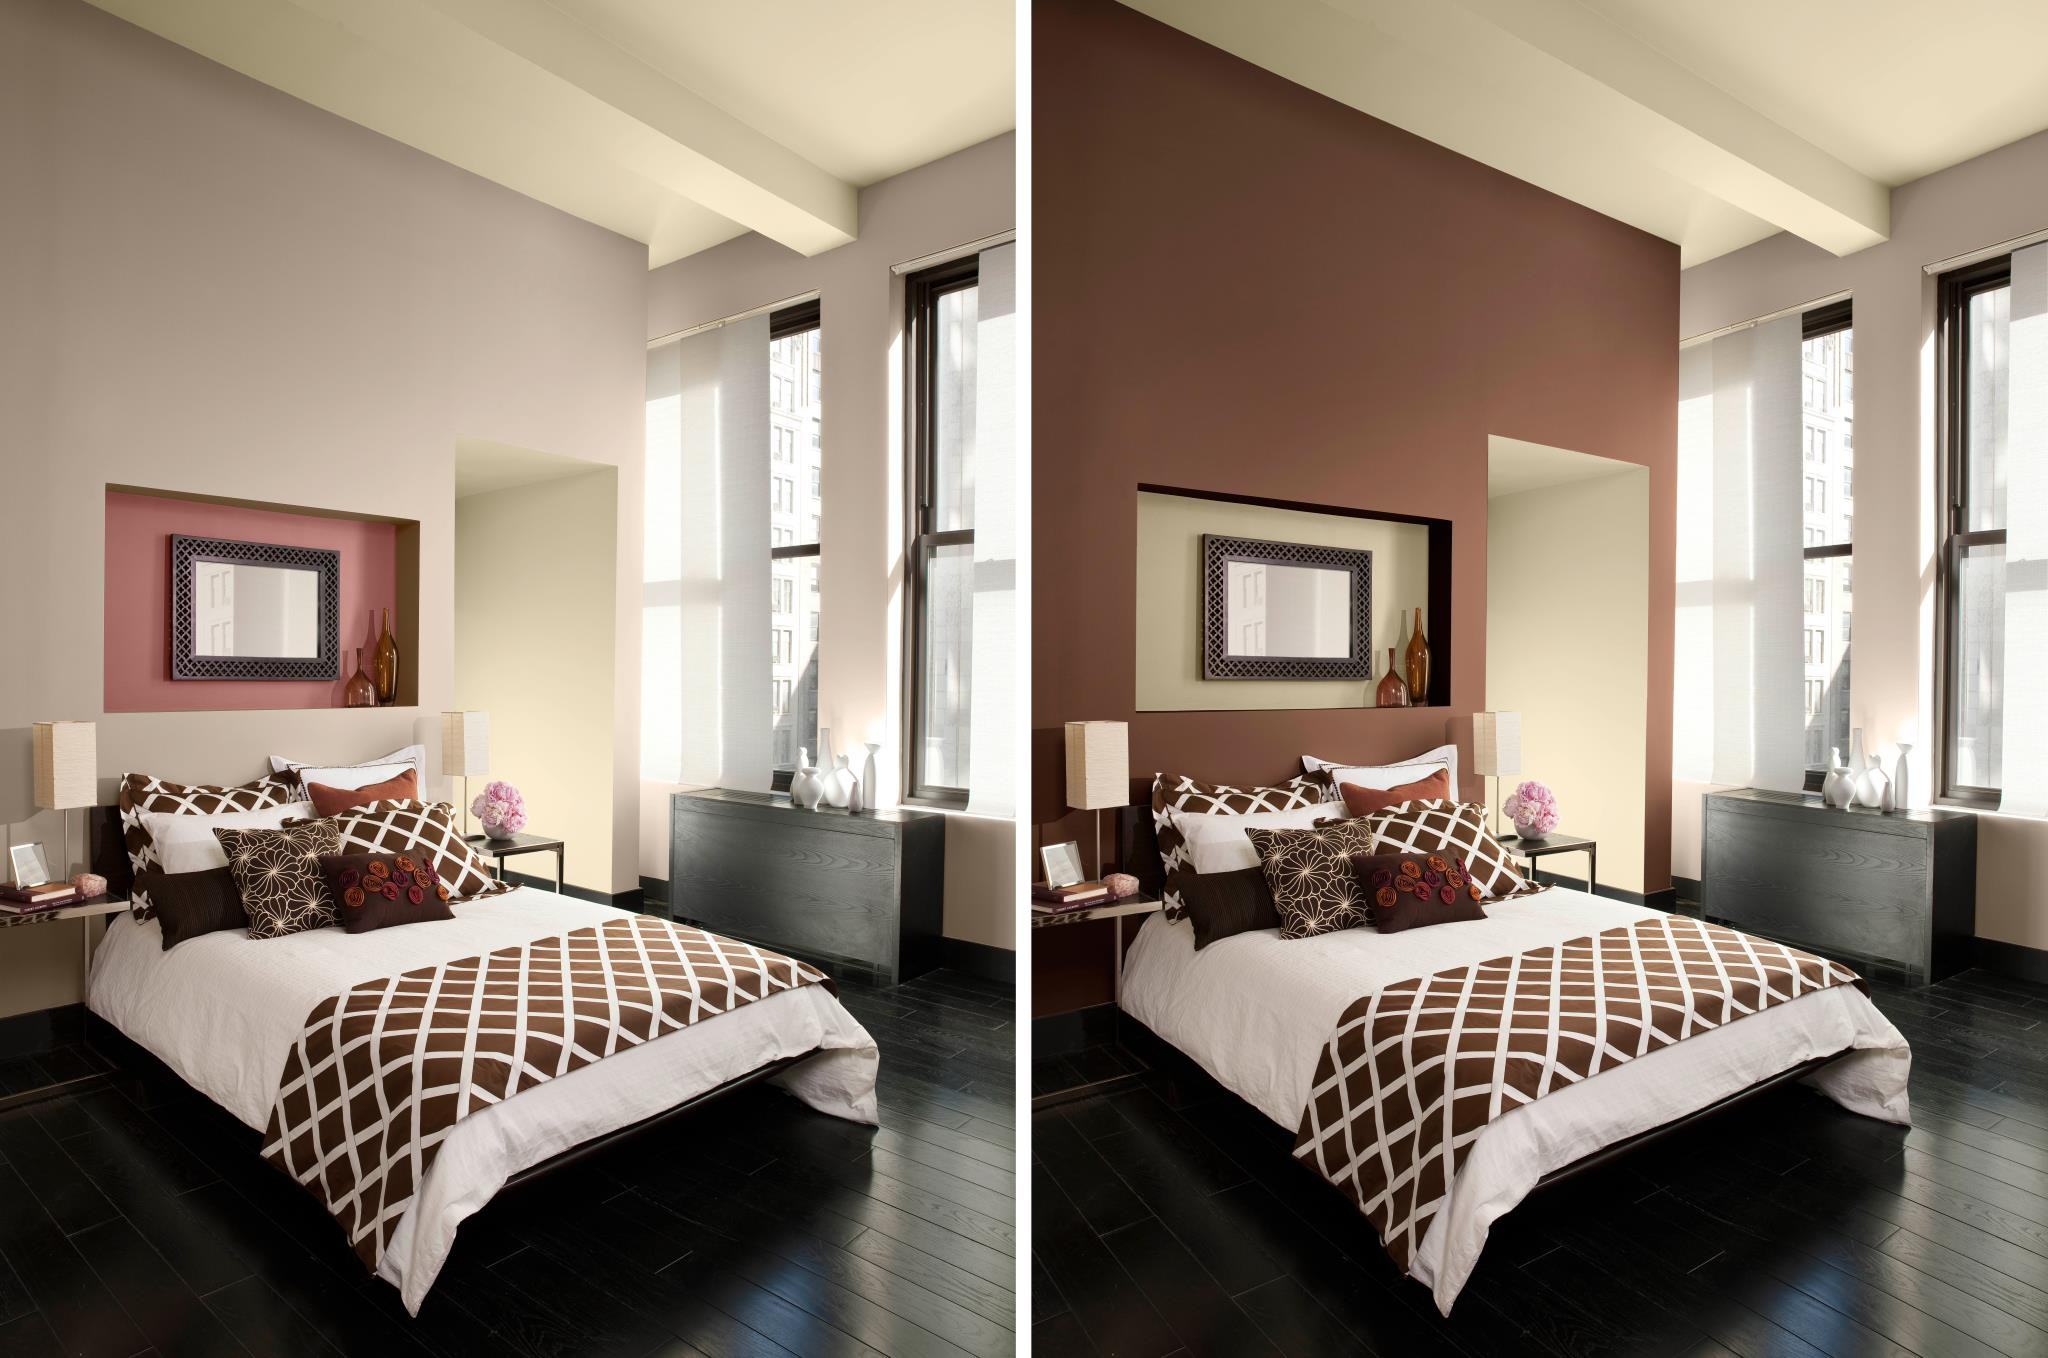 Best ideas about Accent Walls Painting . Save or Pin how to paint an accent wall Now.